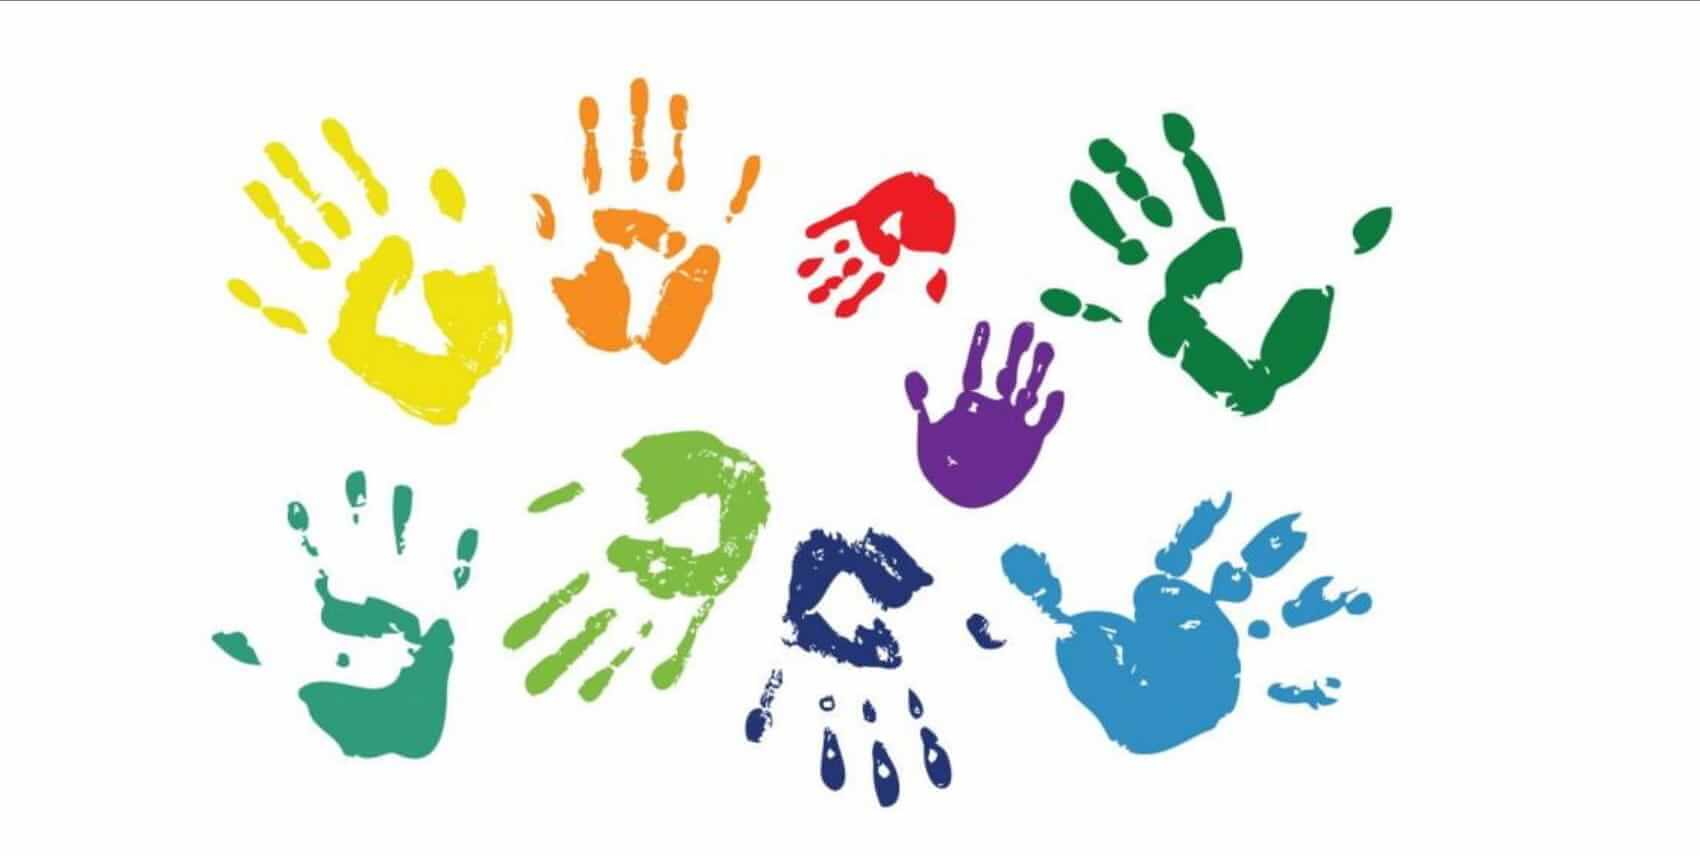 Illustration of hand prints in various colors